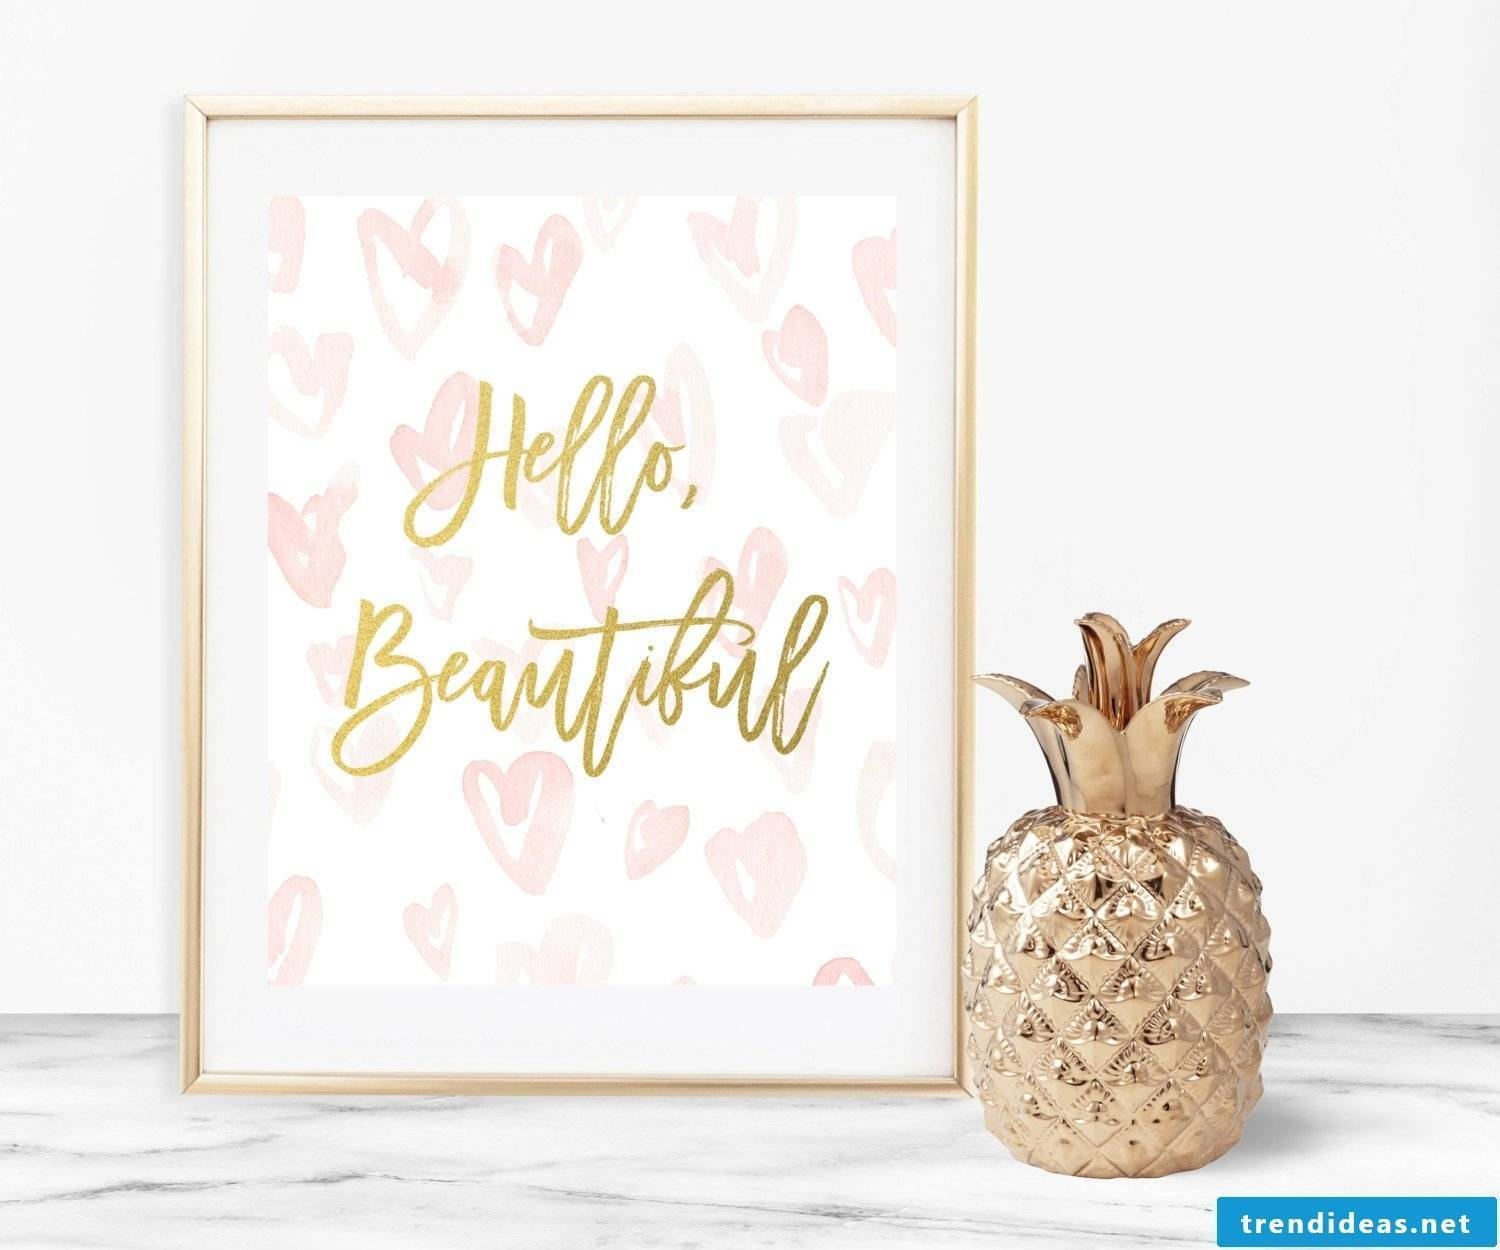 The art of beautiful writing - the calligraphic fonts ABC